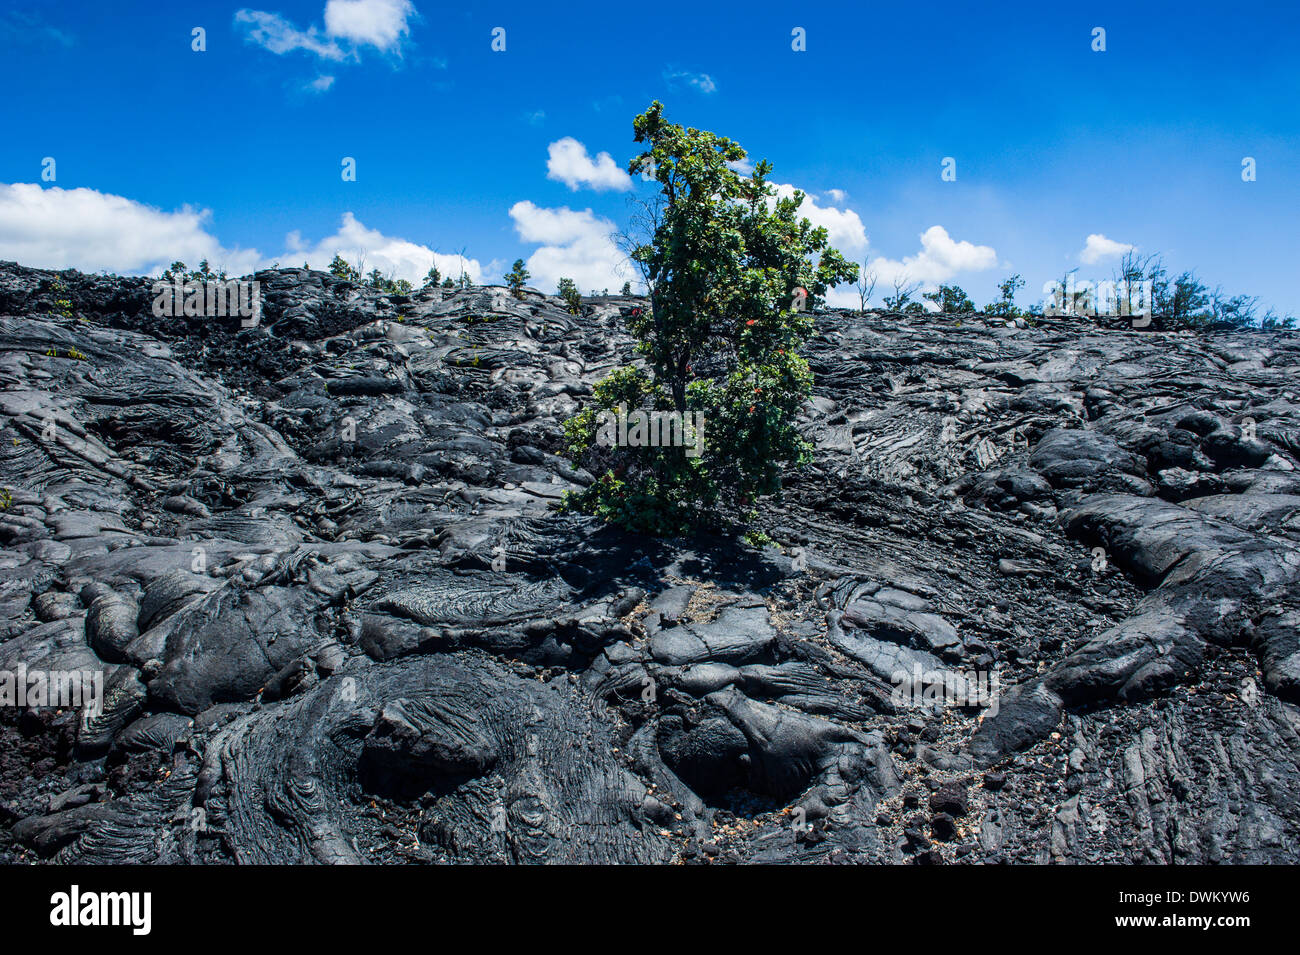 Vulkanischer Lava Stream im Hawaii Volcanoes National Park, UNESCO-Weltkulturerbe, Big Island, Hawaii, Pazifik Stockbild